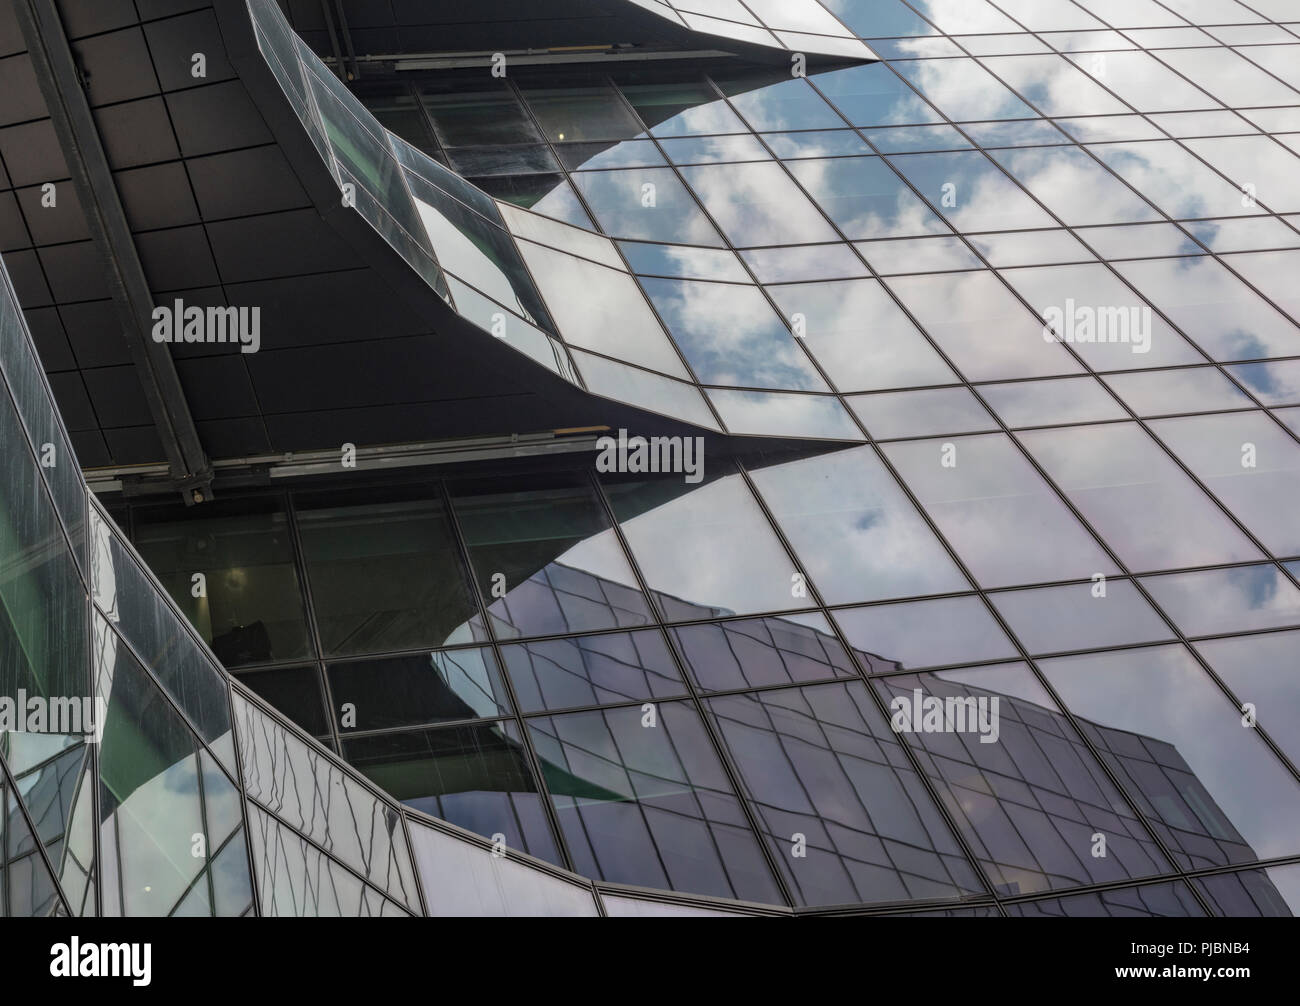 dfbdf99d0c4 modern contemporary abstract glass buildings for offices in more london  place in central london.